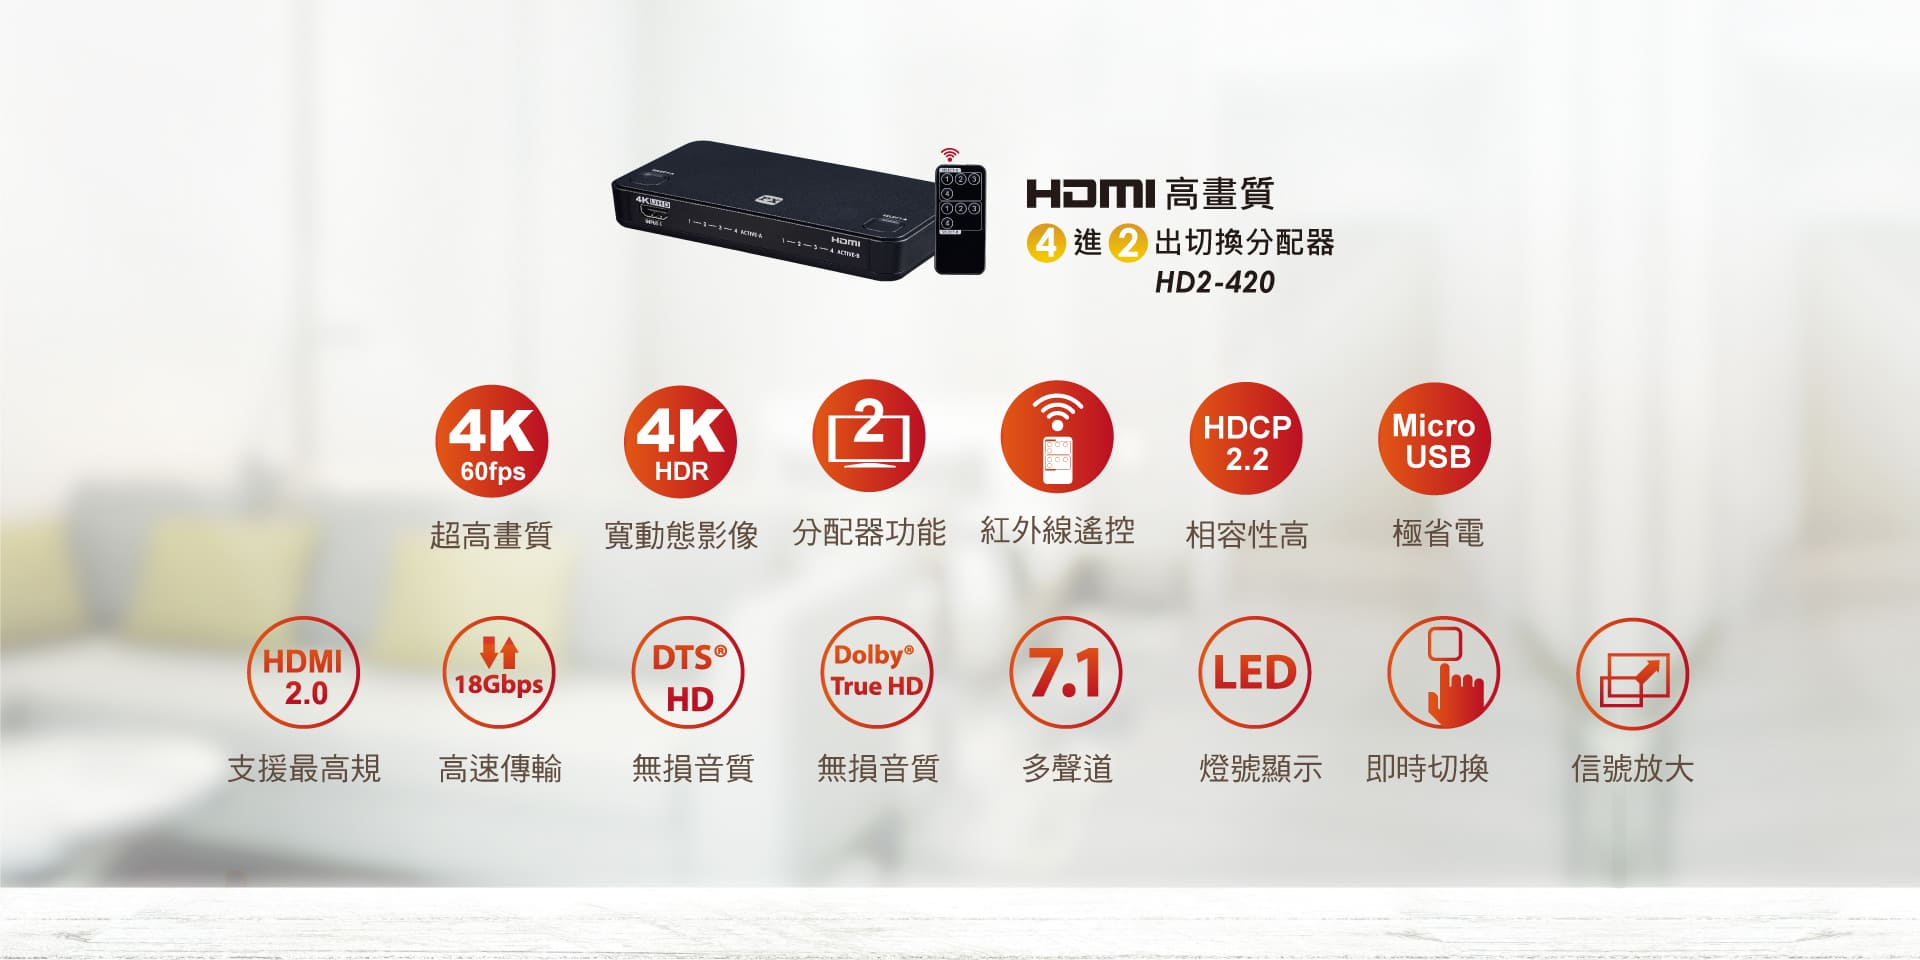 proimages/product/HDMI/HD2-420/HD2-420_02.jpg